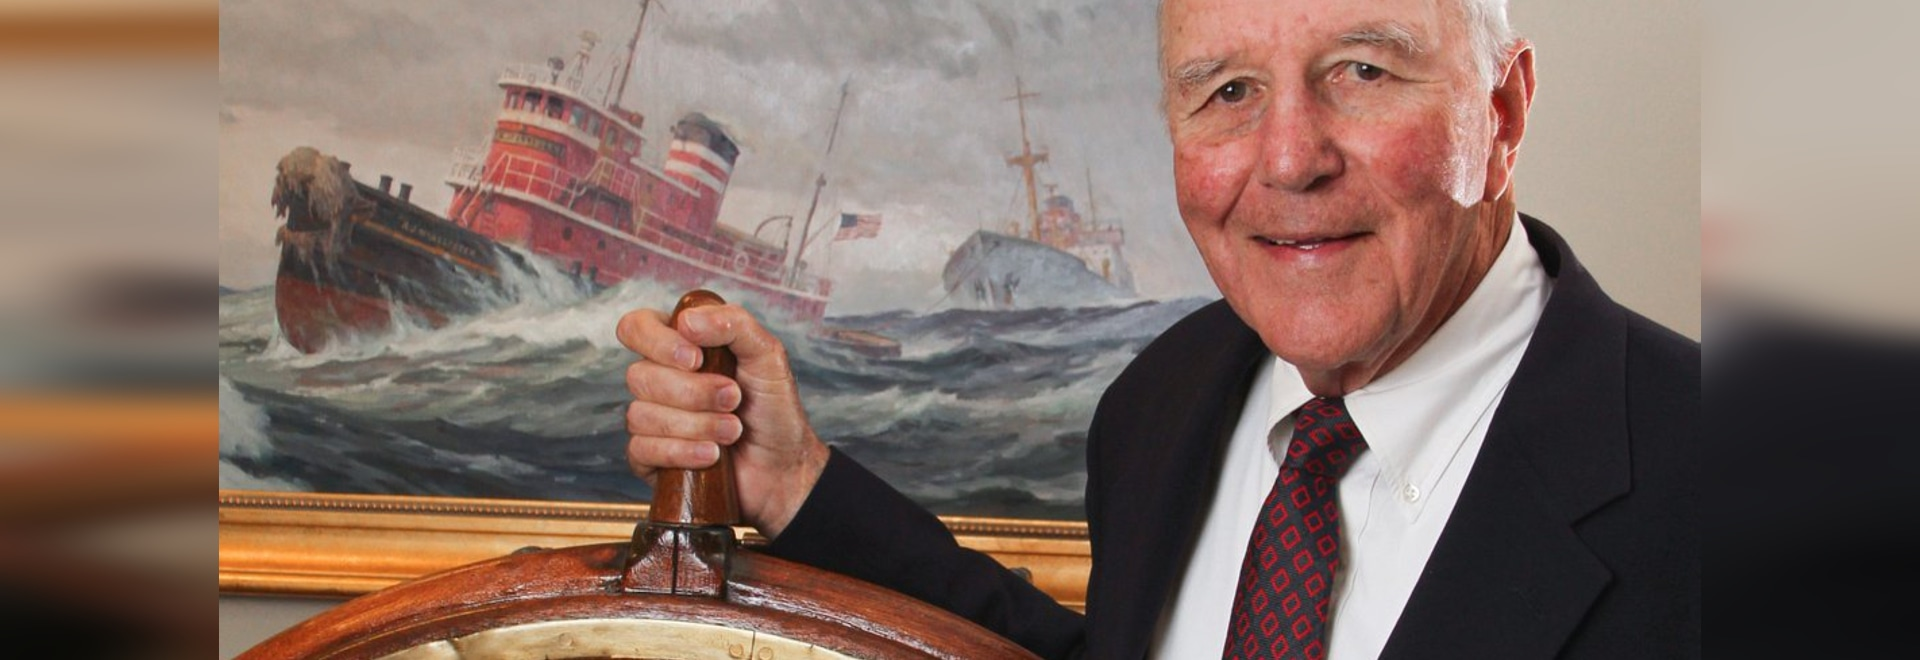 McAllister Towing chairman Capt. Brian A. McAllister. Photo courtesy SUNY Maritime College.